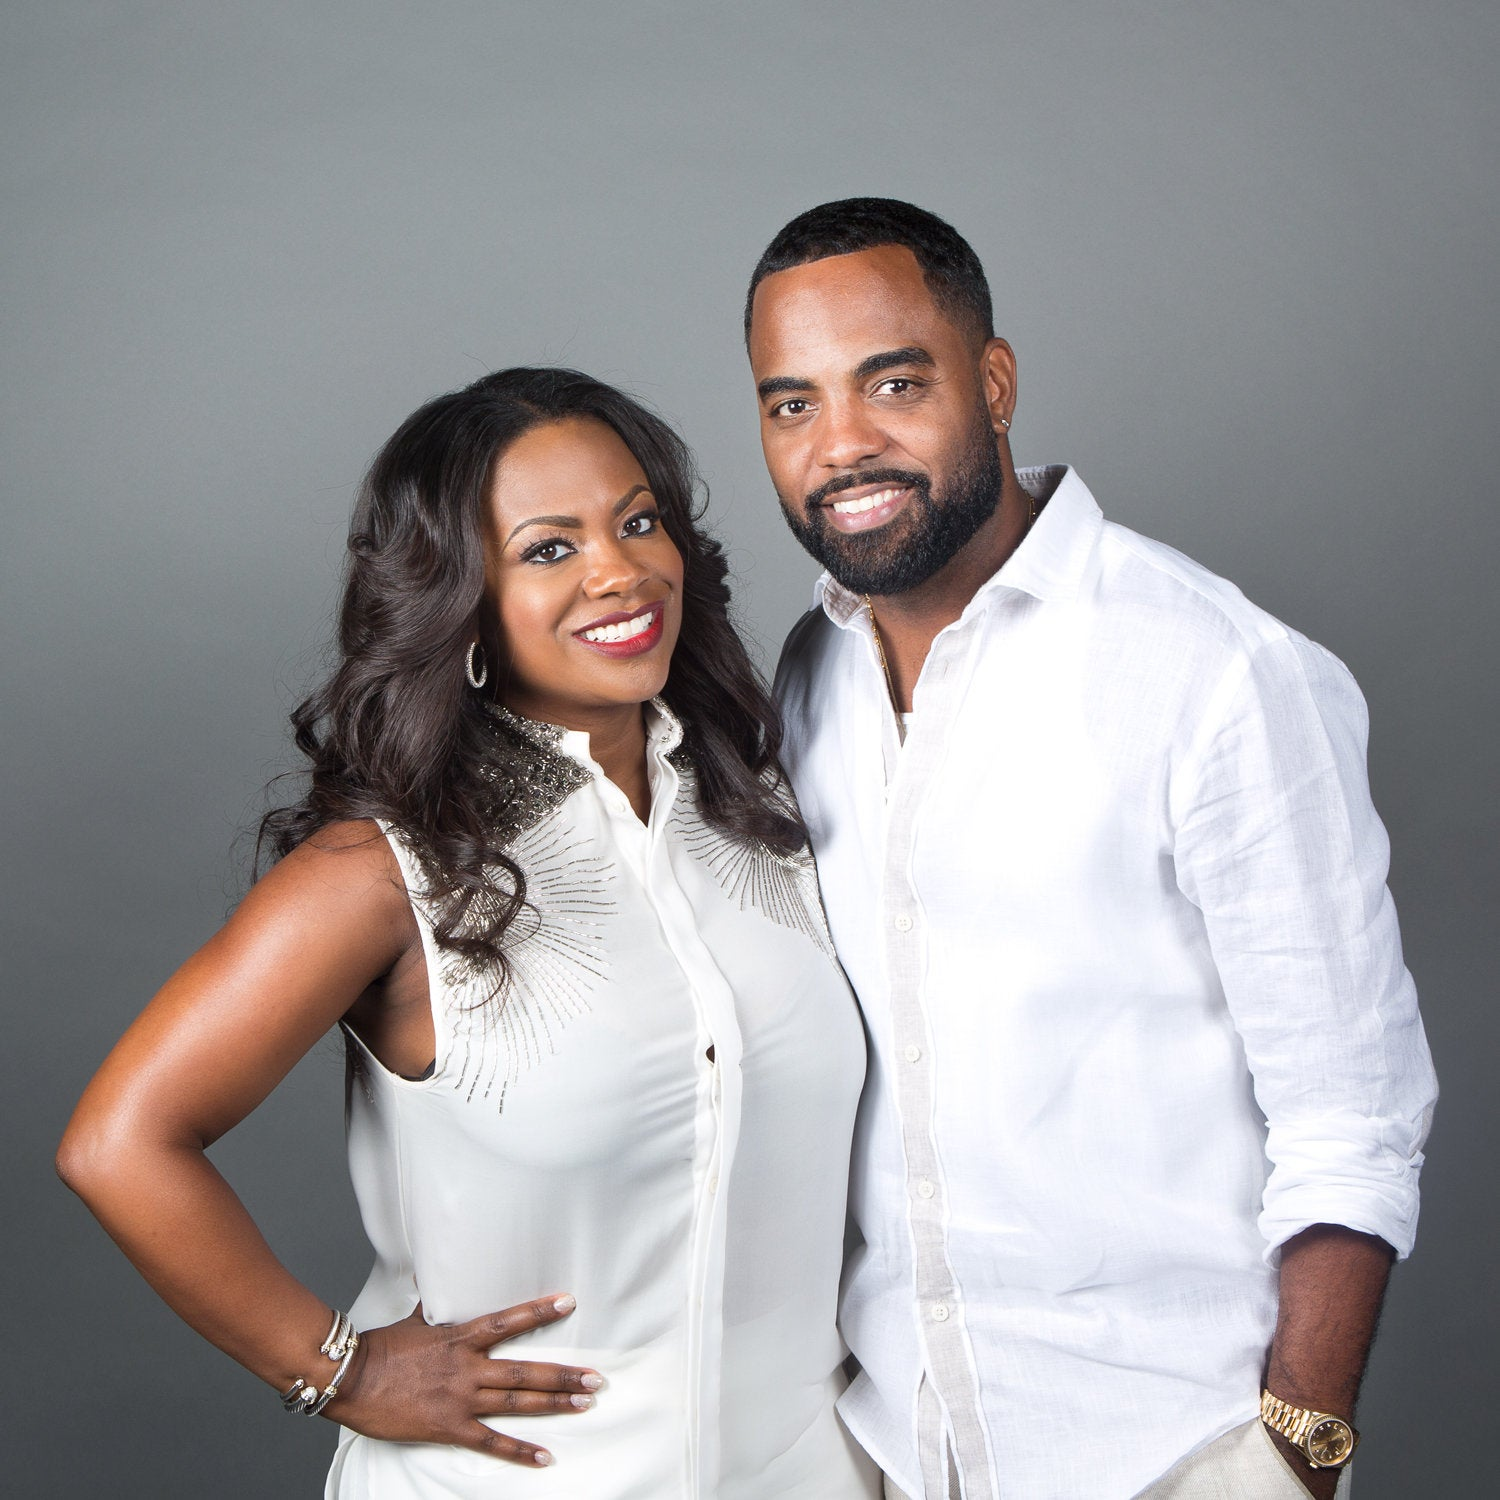 Kandi Burruss Celebrates Hubby 44th Birthday With a 4:44 Themed Bash